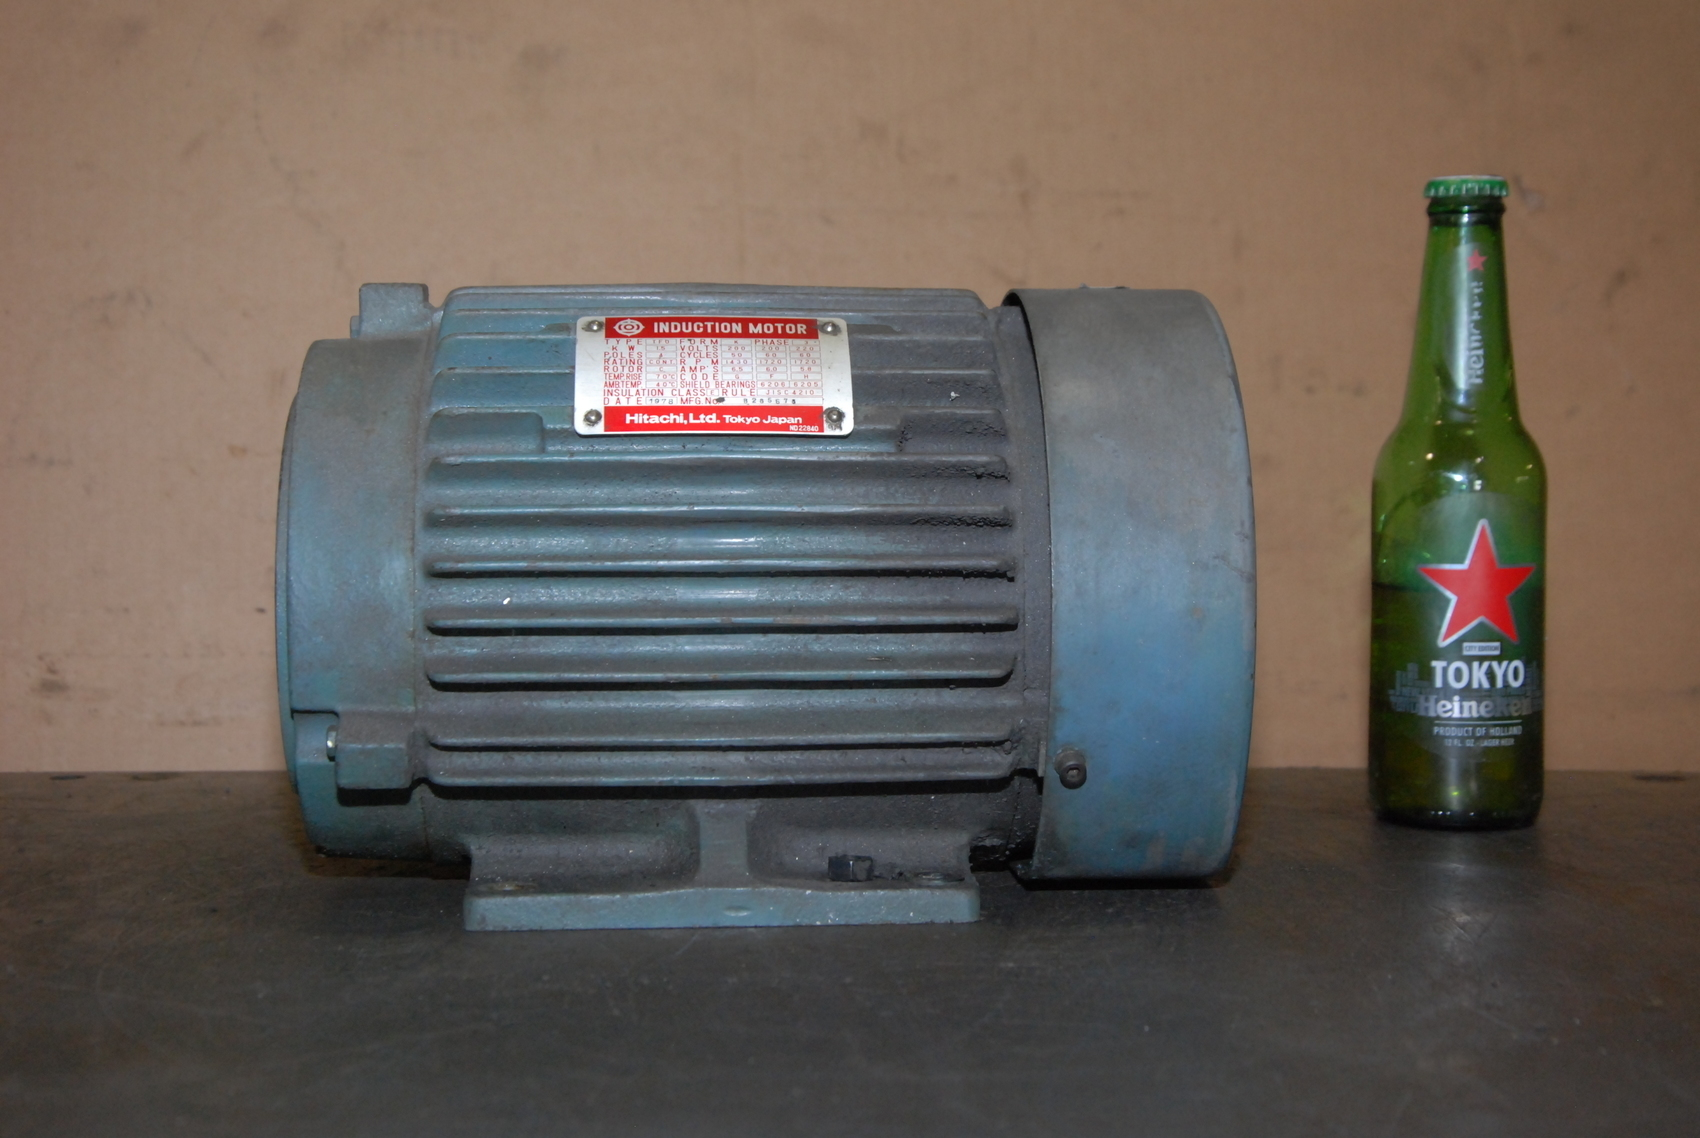 Hitachi 1 5kw electric motor 3 phase 1430 1720 rpm hollow 1 kw electric motor